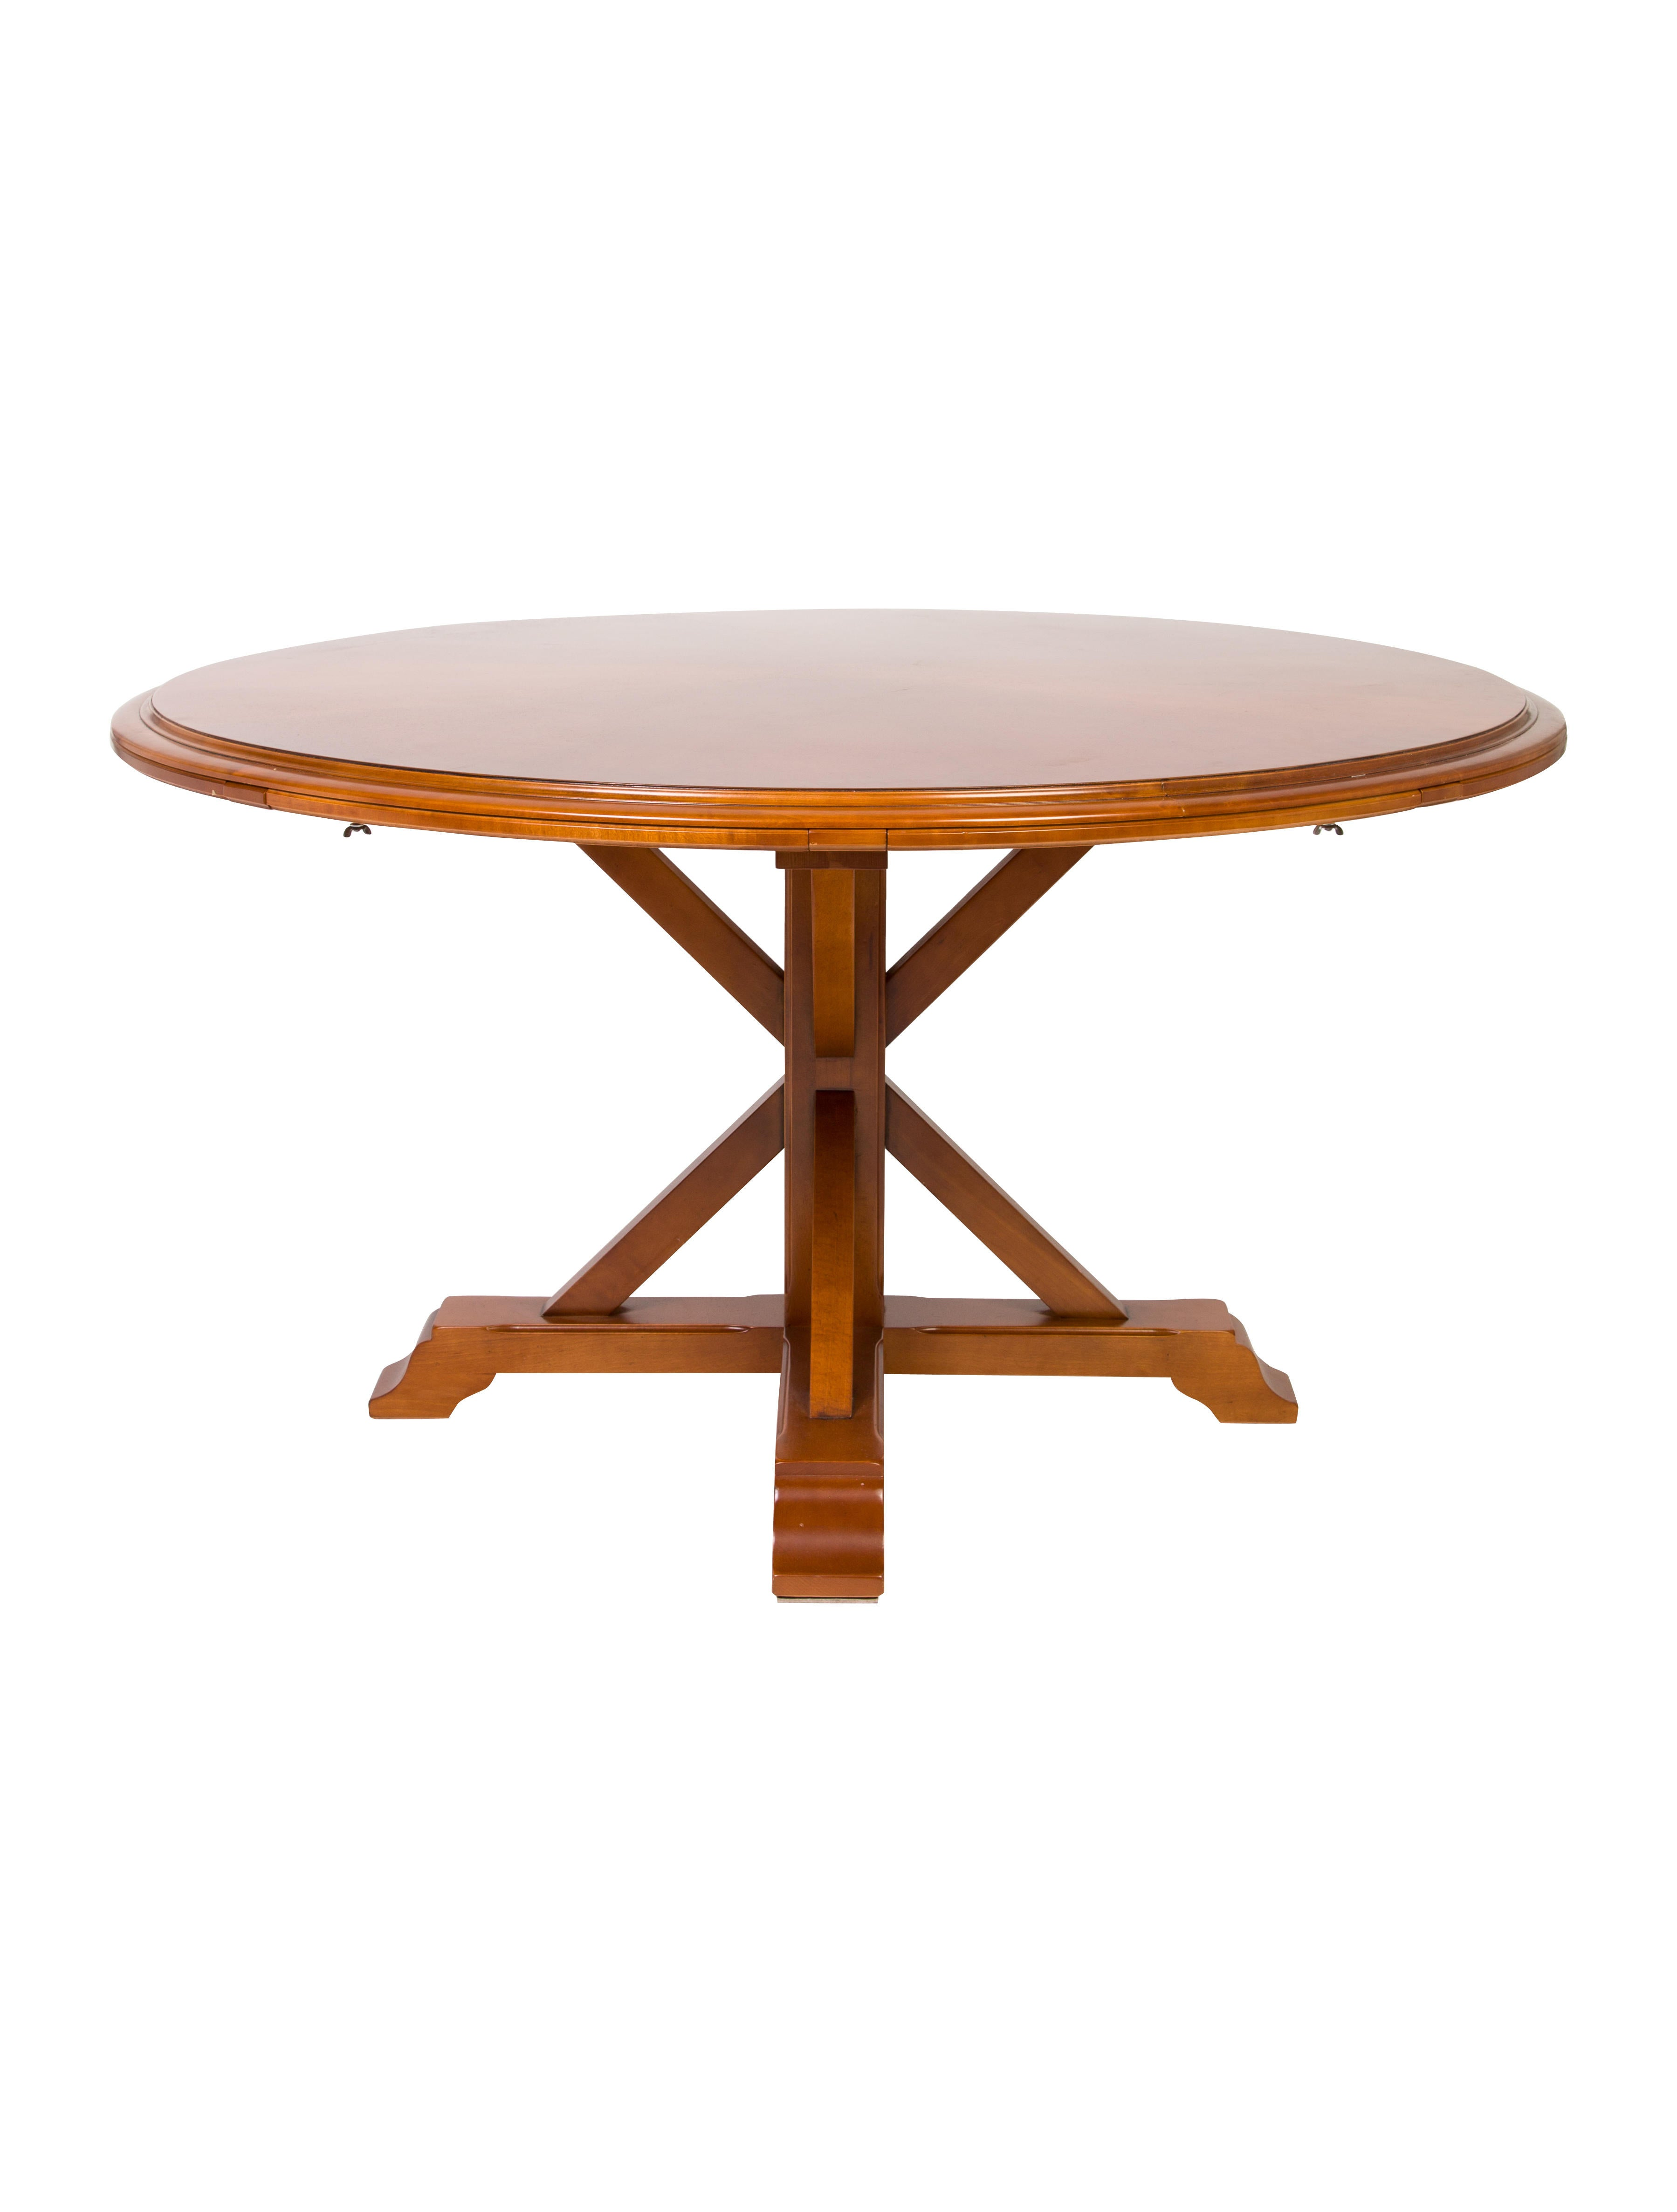 Round Extendable Dining Table Furniture TABLE20463  : TABLE204631enlarged from www.therealreal.com size 3598 x 4747 jpeg 325kB